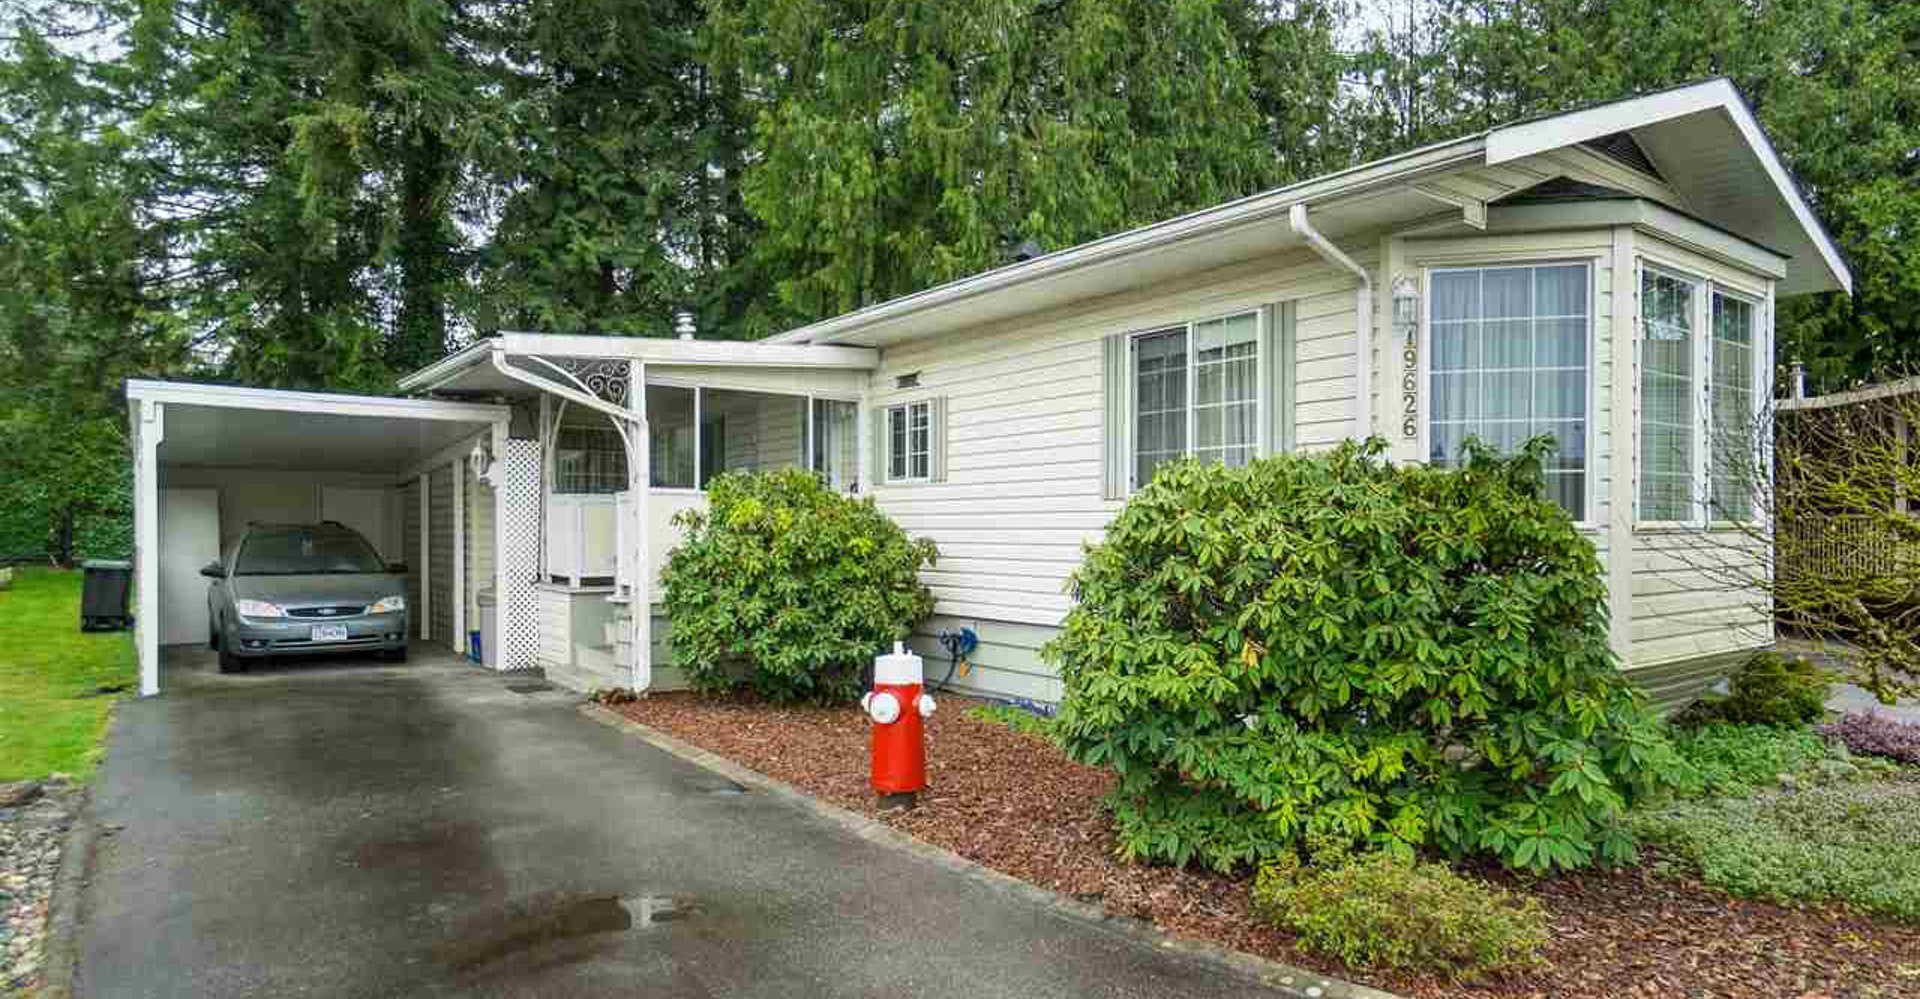 Main Photo: 19626 Pinyon Lane in Pitt Meadows: Manufactured Home for sale : MLS®# R2356376